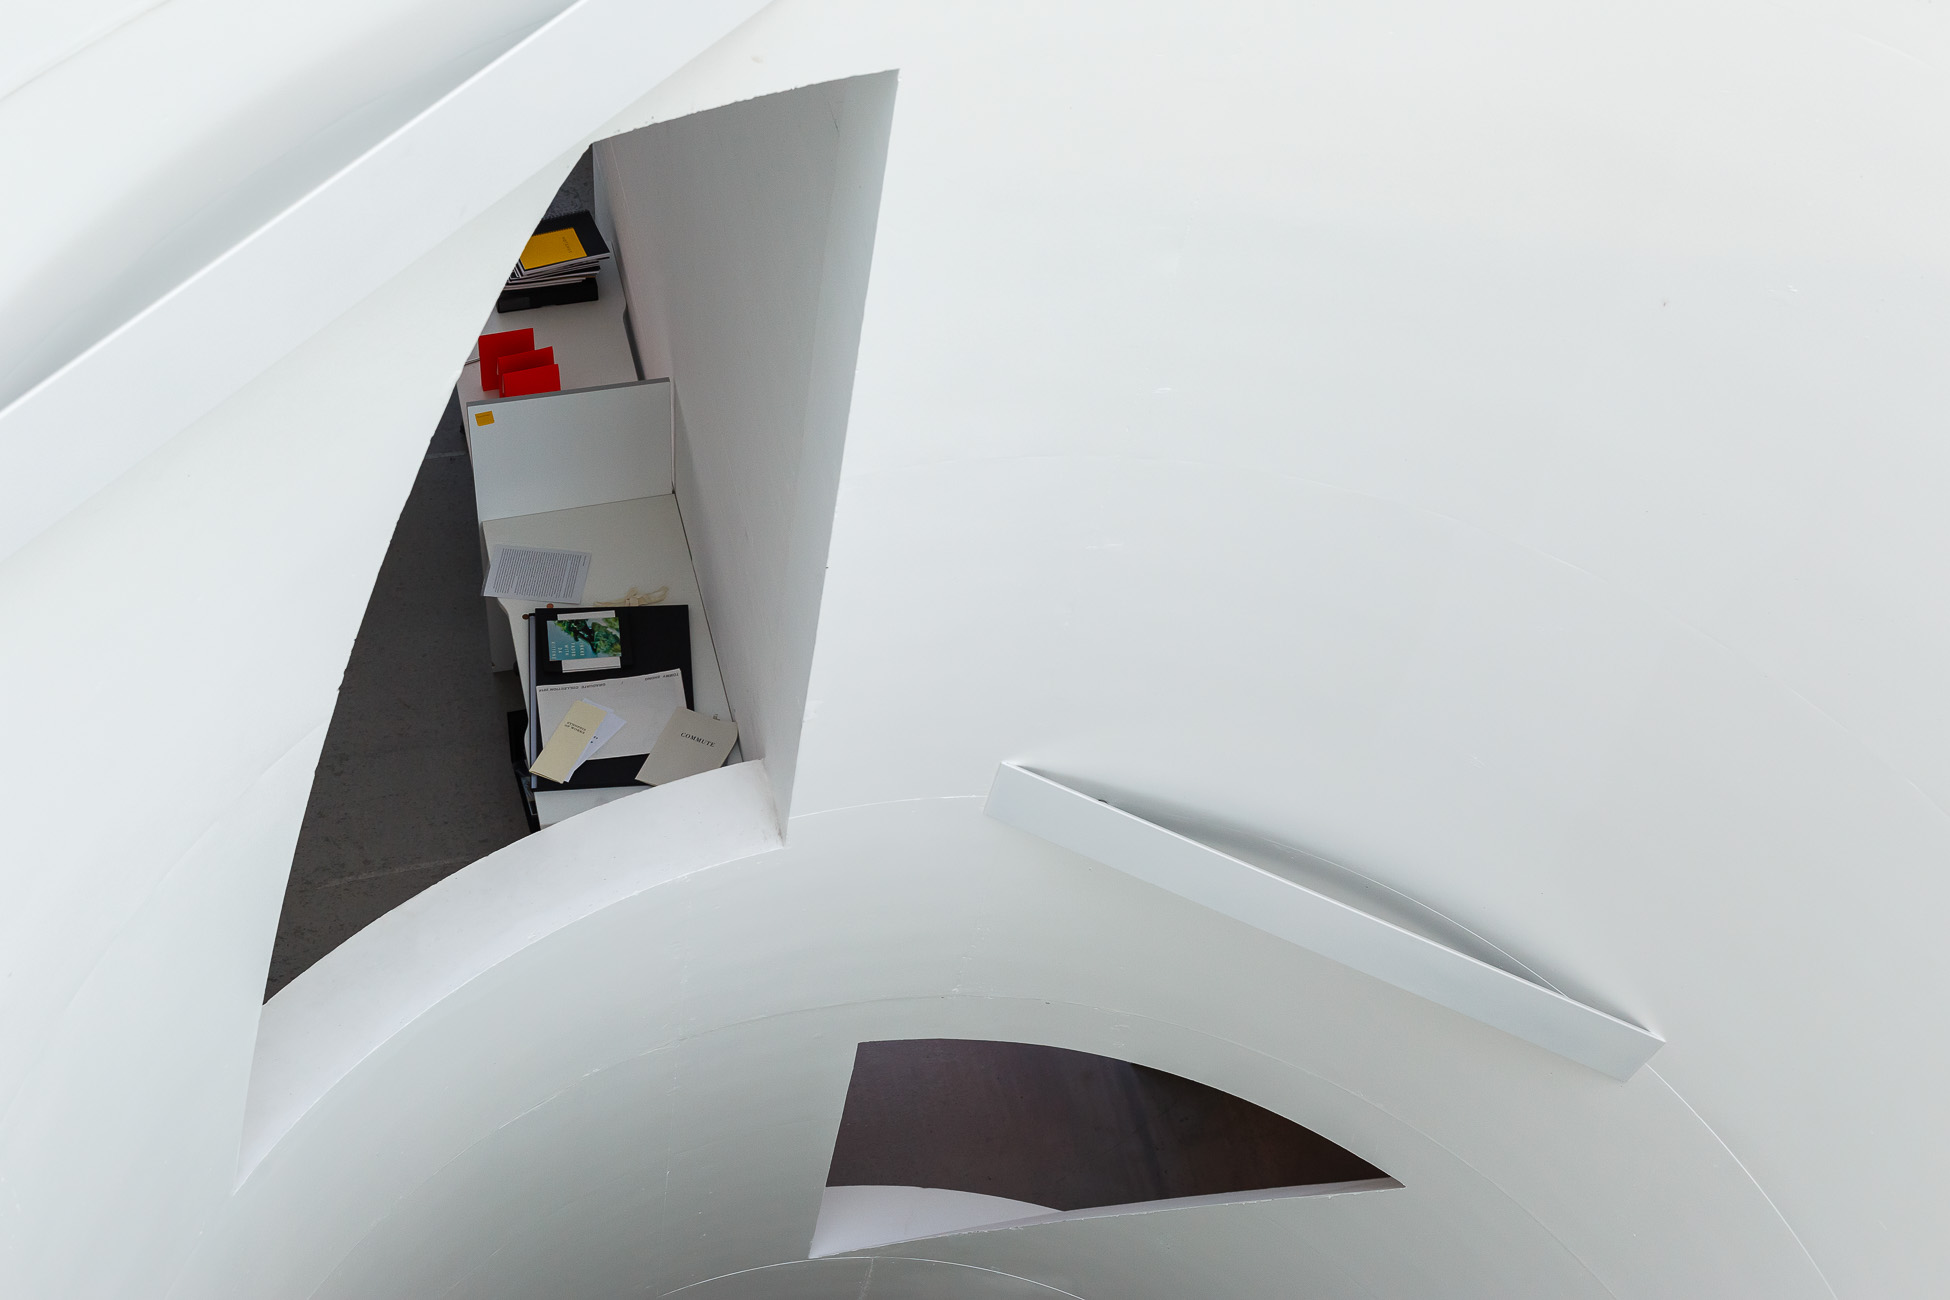 doublespace_architecture_steven_holl_glasgow_reid_school_of_arts-0058